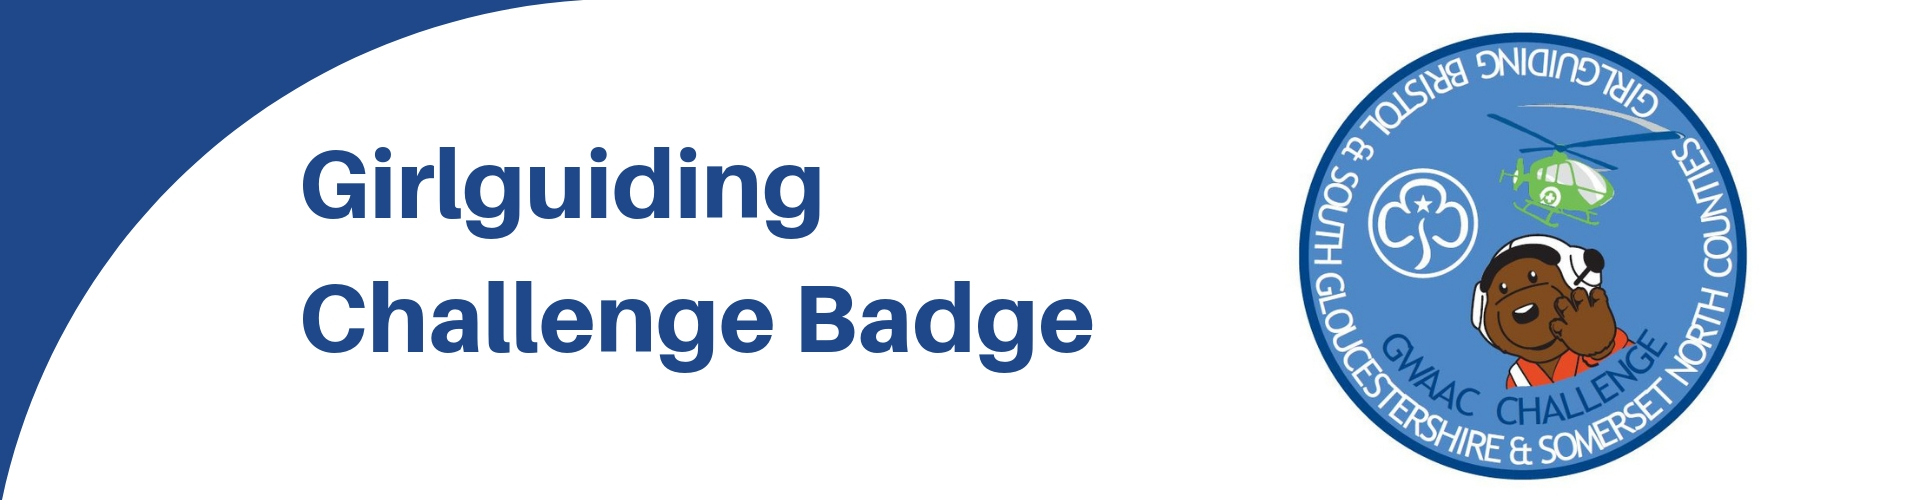 GWAAC Girlguiding Challenge Badge